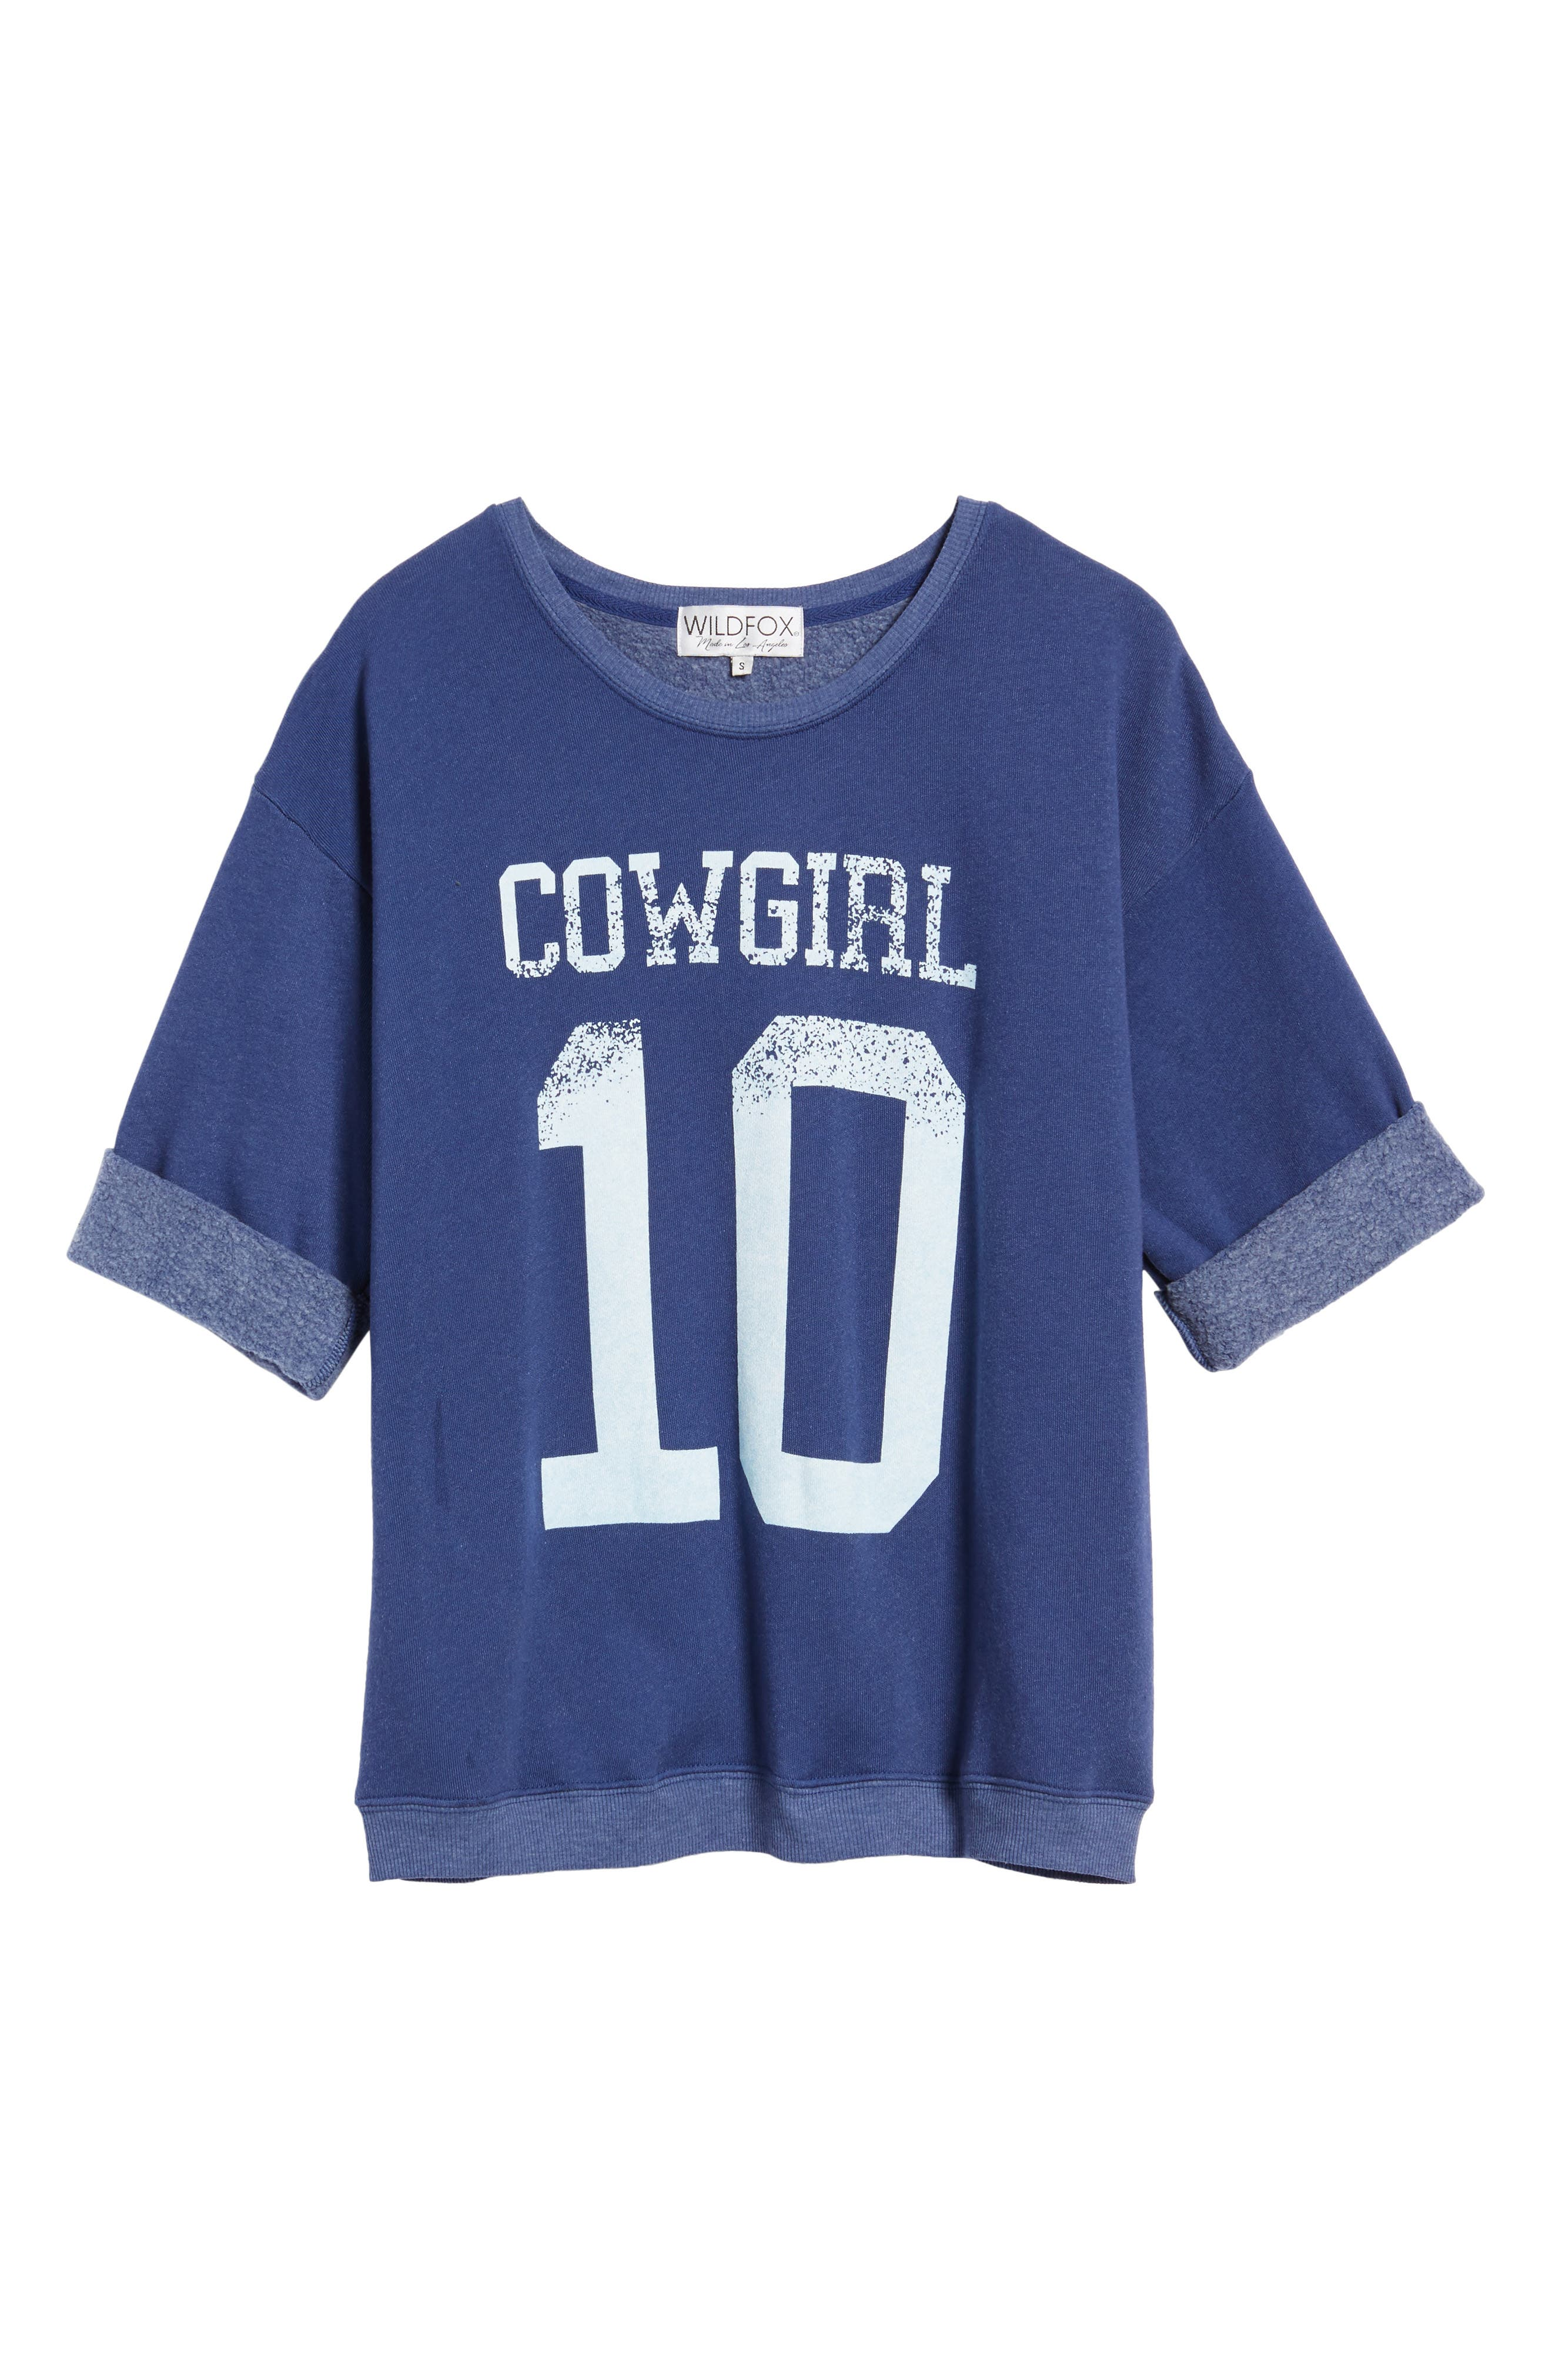 Cowgirl Sweatshirt,                             Alternate thumbnail 6, color,                             400